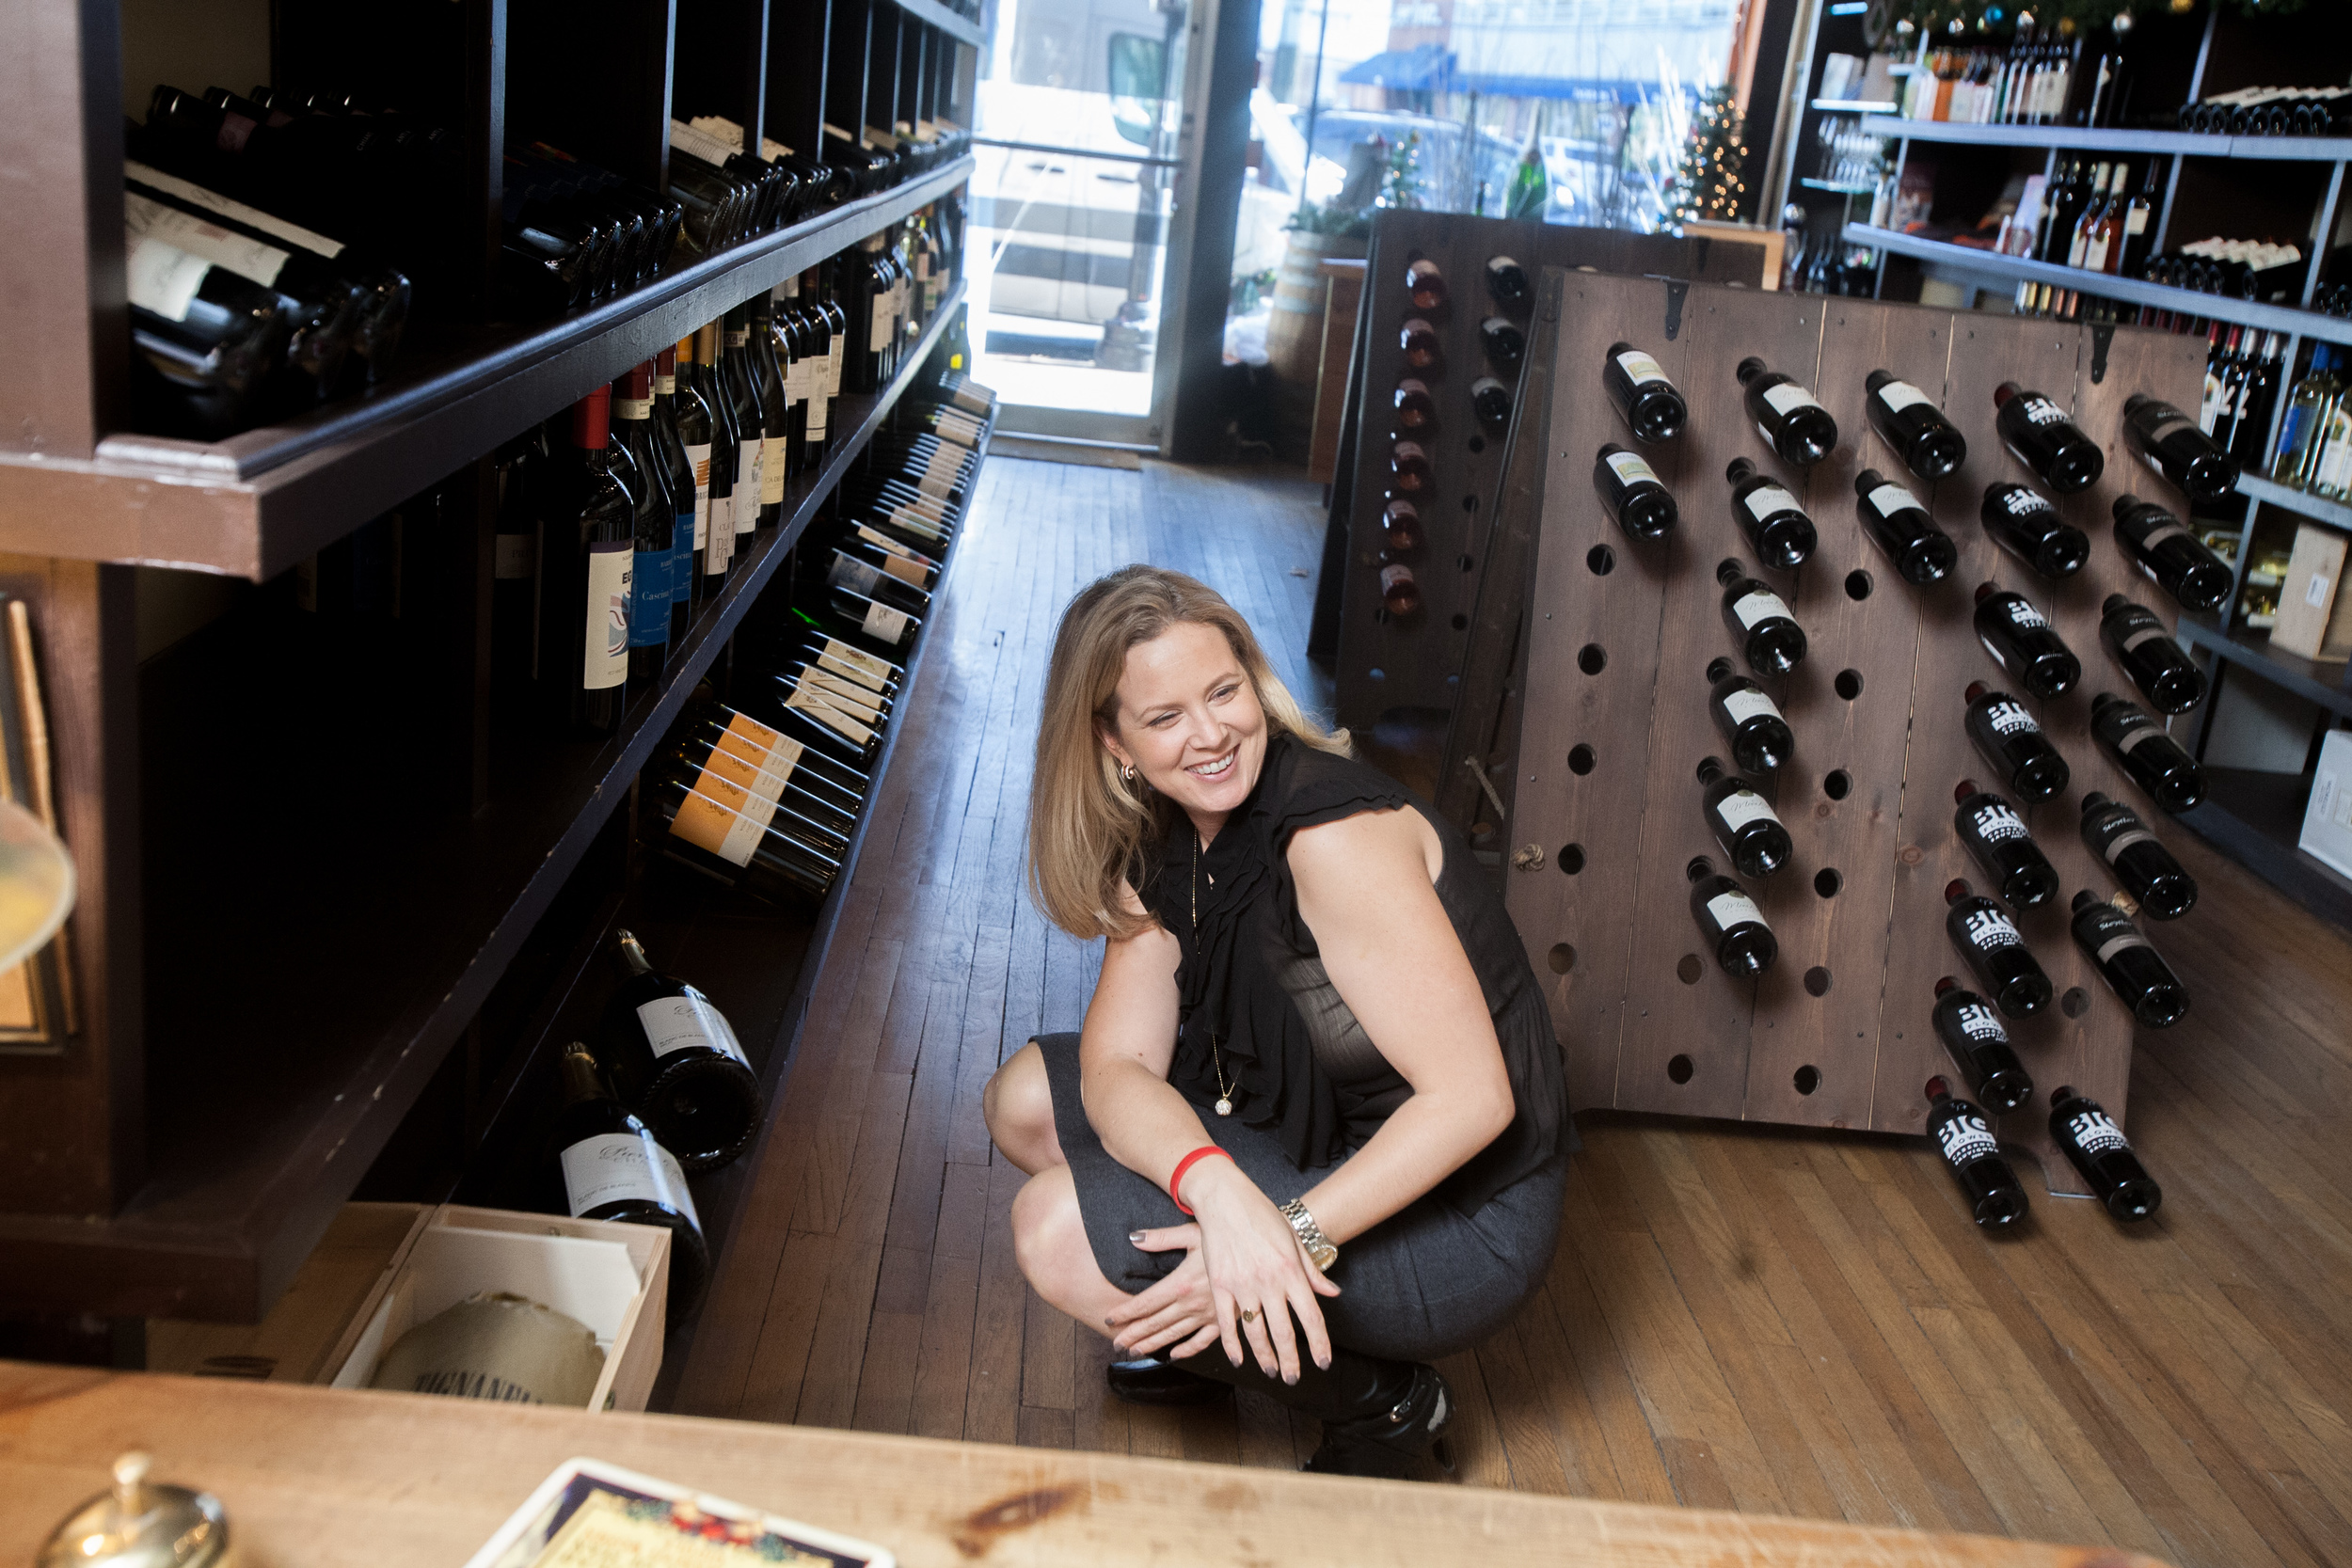 Amy has memorized where certain bottles are stored at the shop. She is planning to open a wine bar in Connecticut, but is still looking for the location. The bar will be called The Wine Lab, inspired by Elvis and her early training as a pharmacy student.